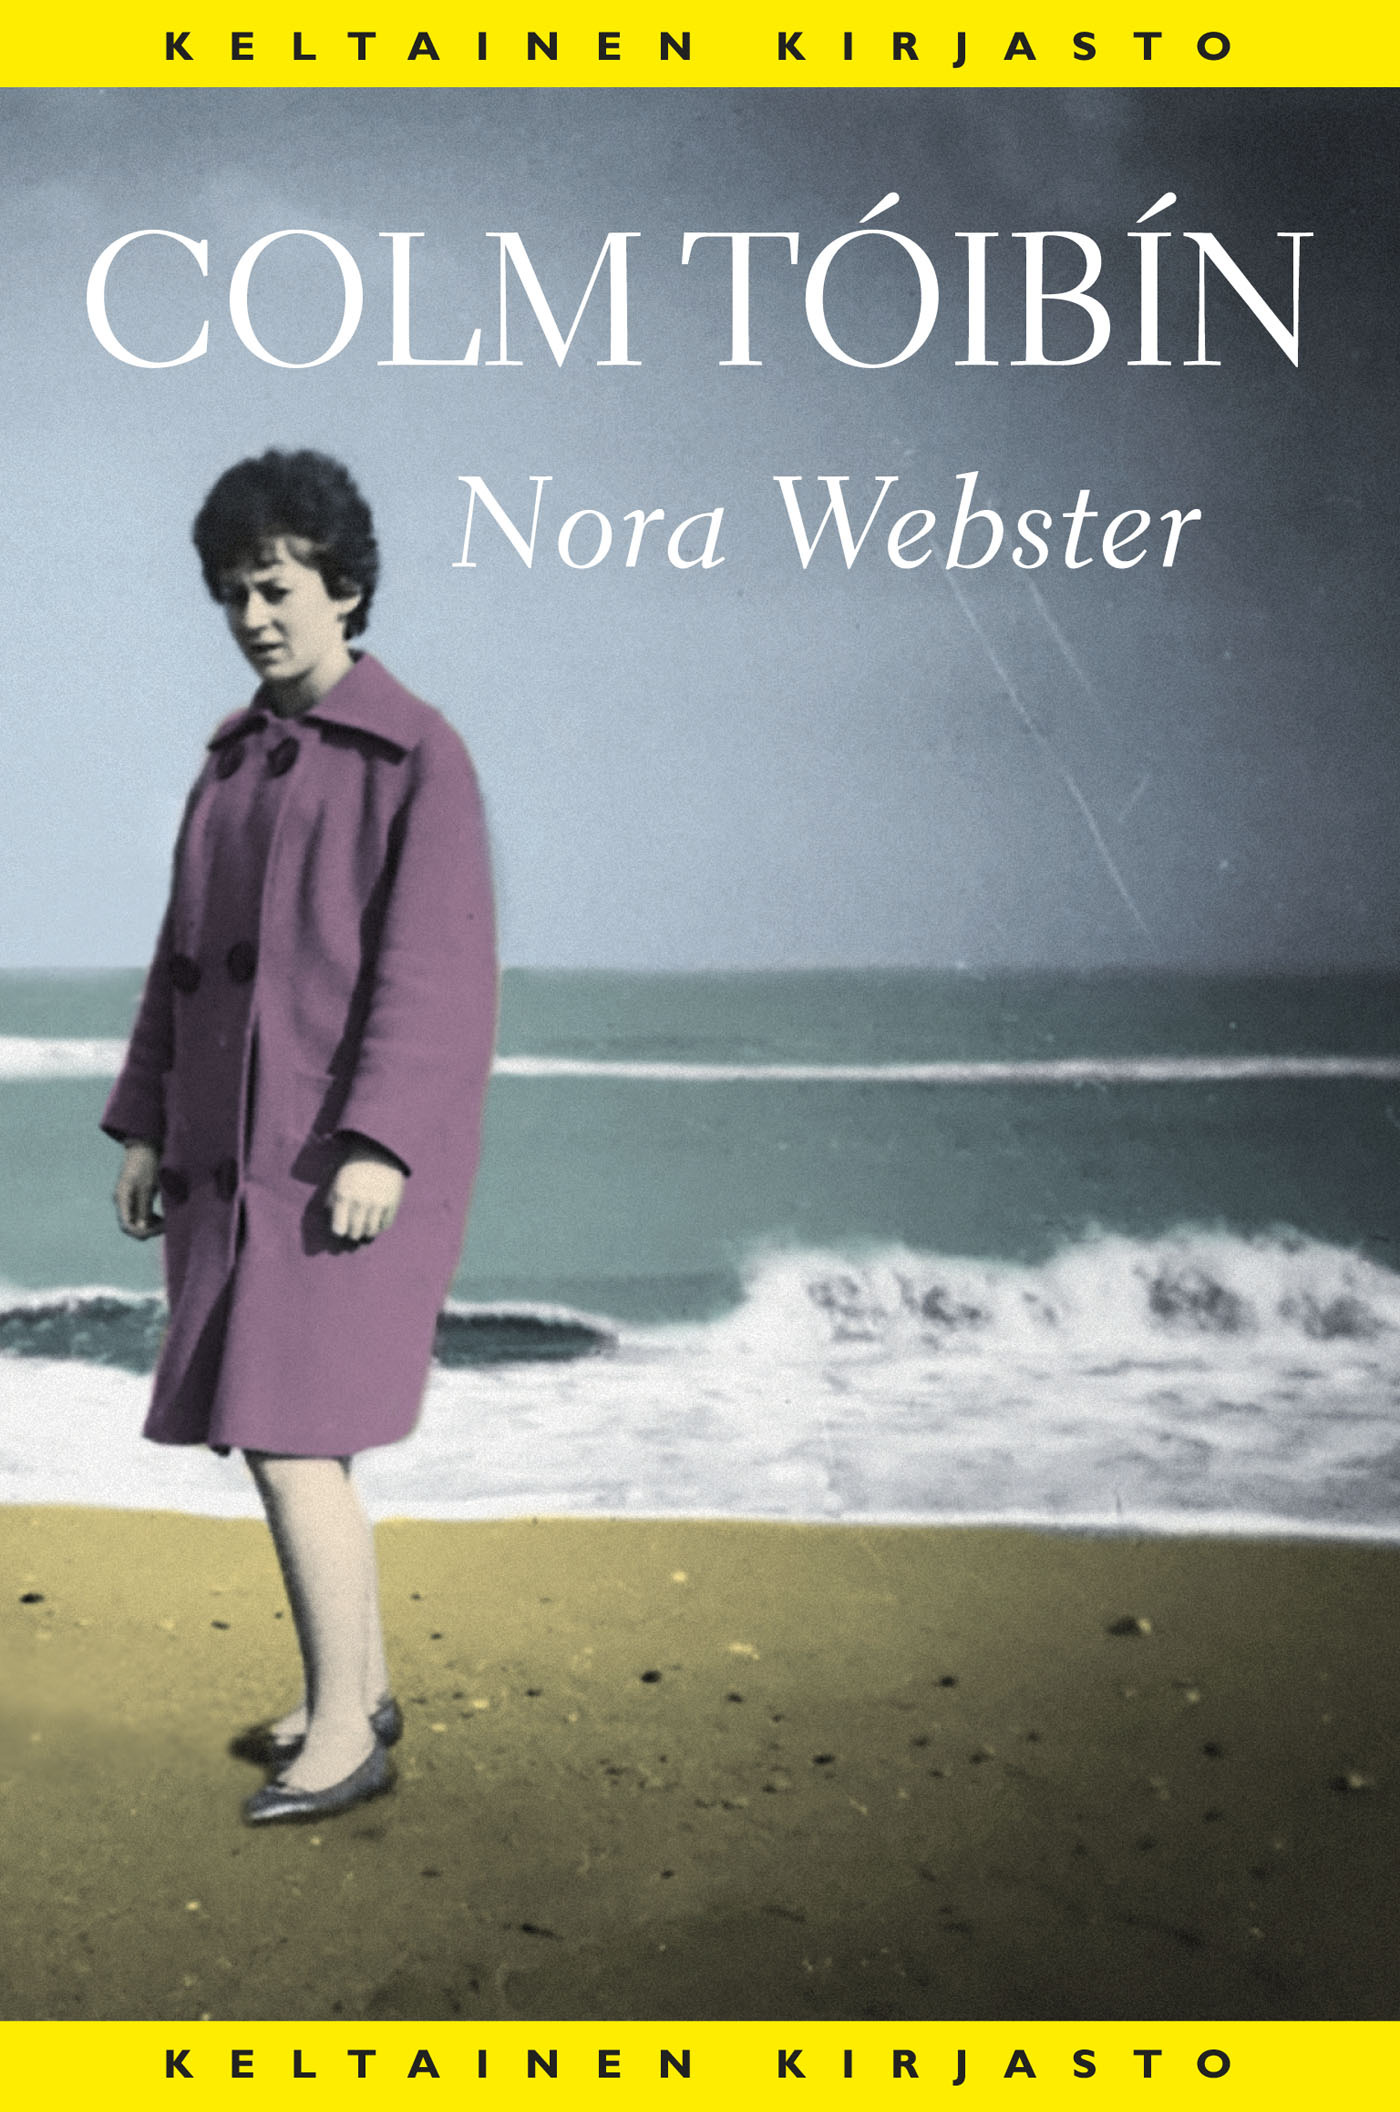 Tóibín, Colm - Nora Webster, ebook